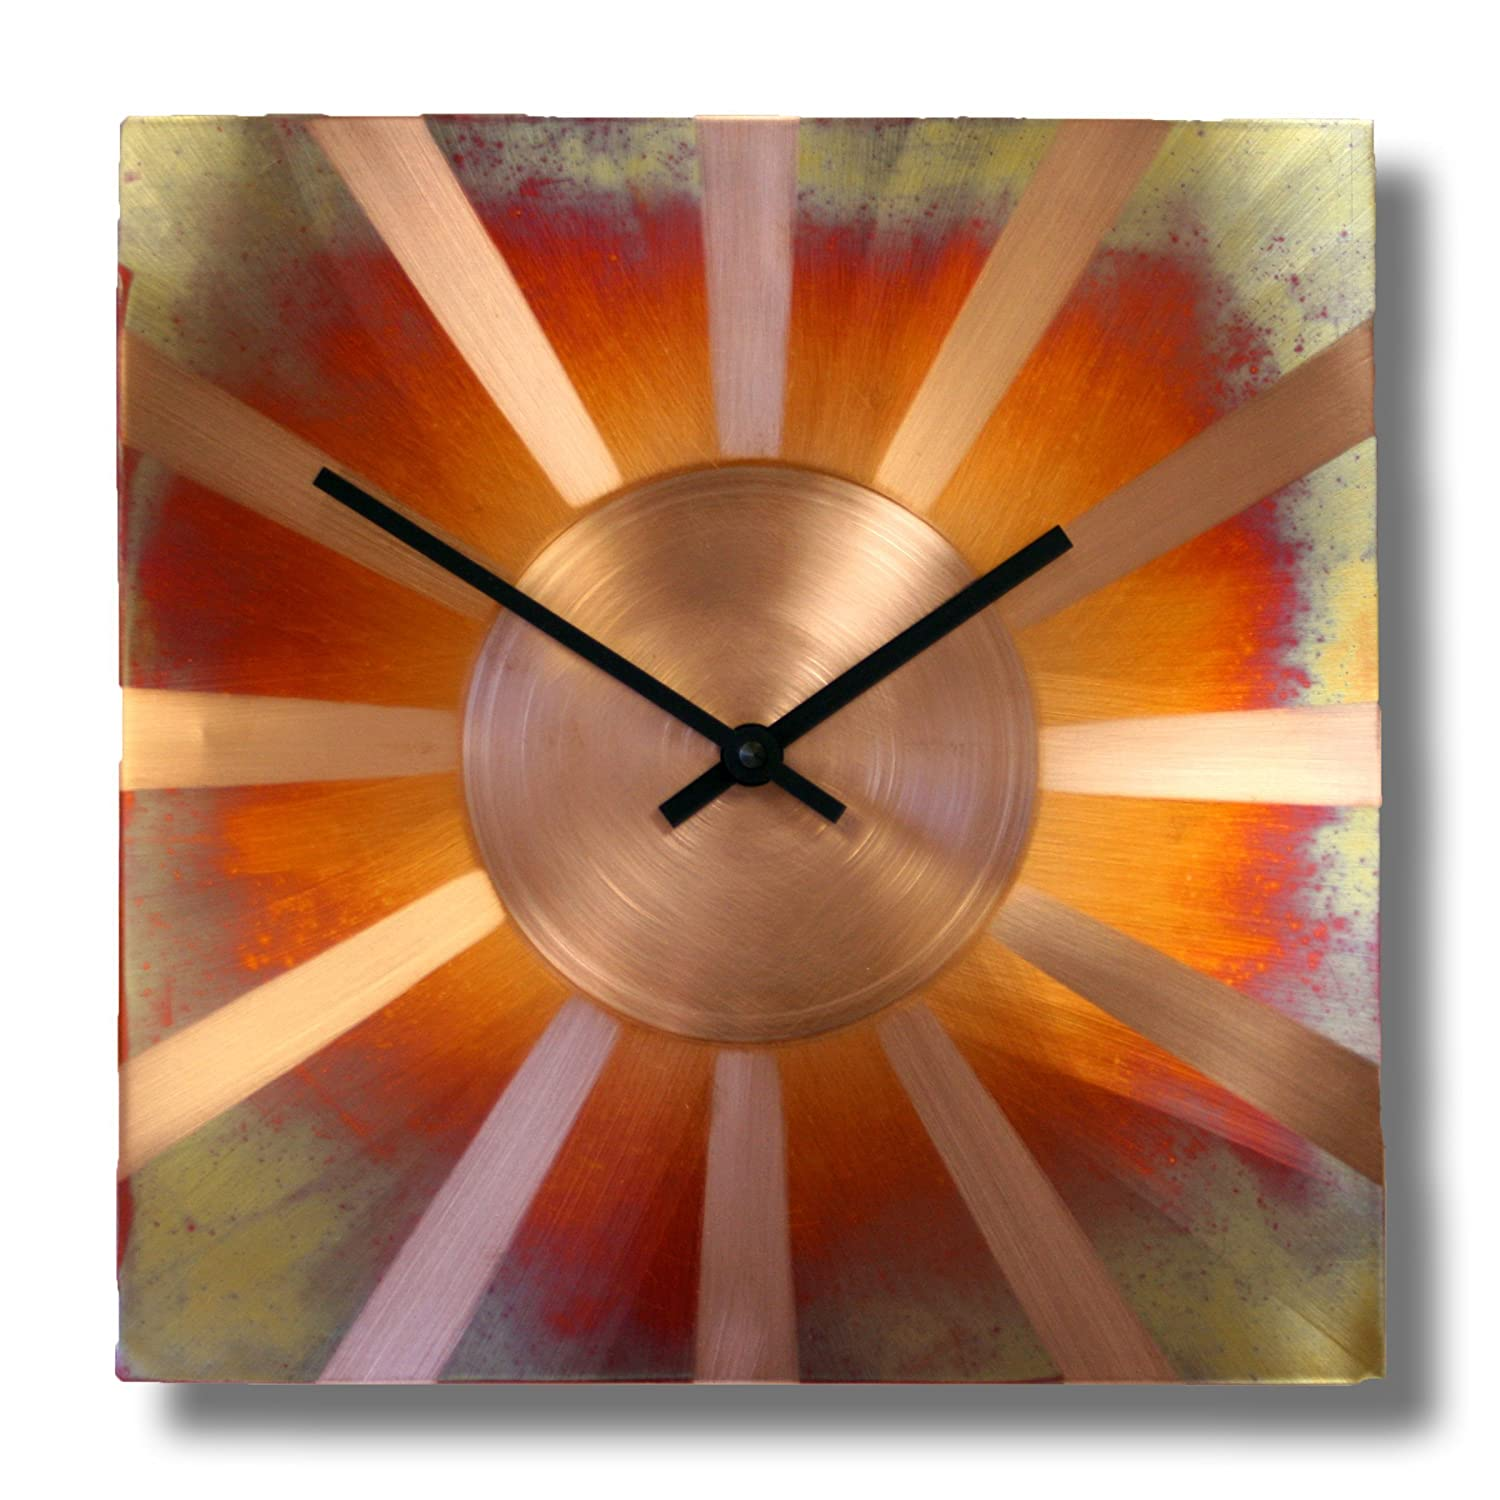 Sunny Copper Square Decorative Wall Clock 12-inch Silent Non Ticking for Home/Office / Kitchen/Bedroom / Living Room